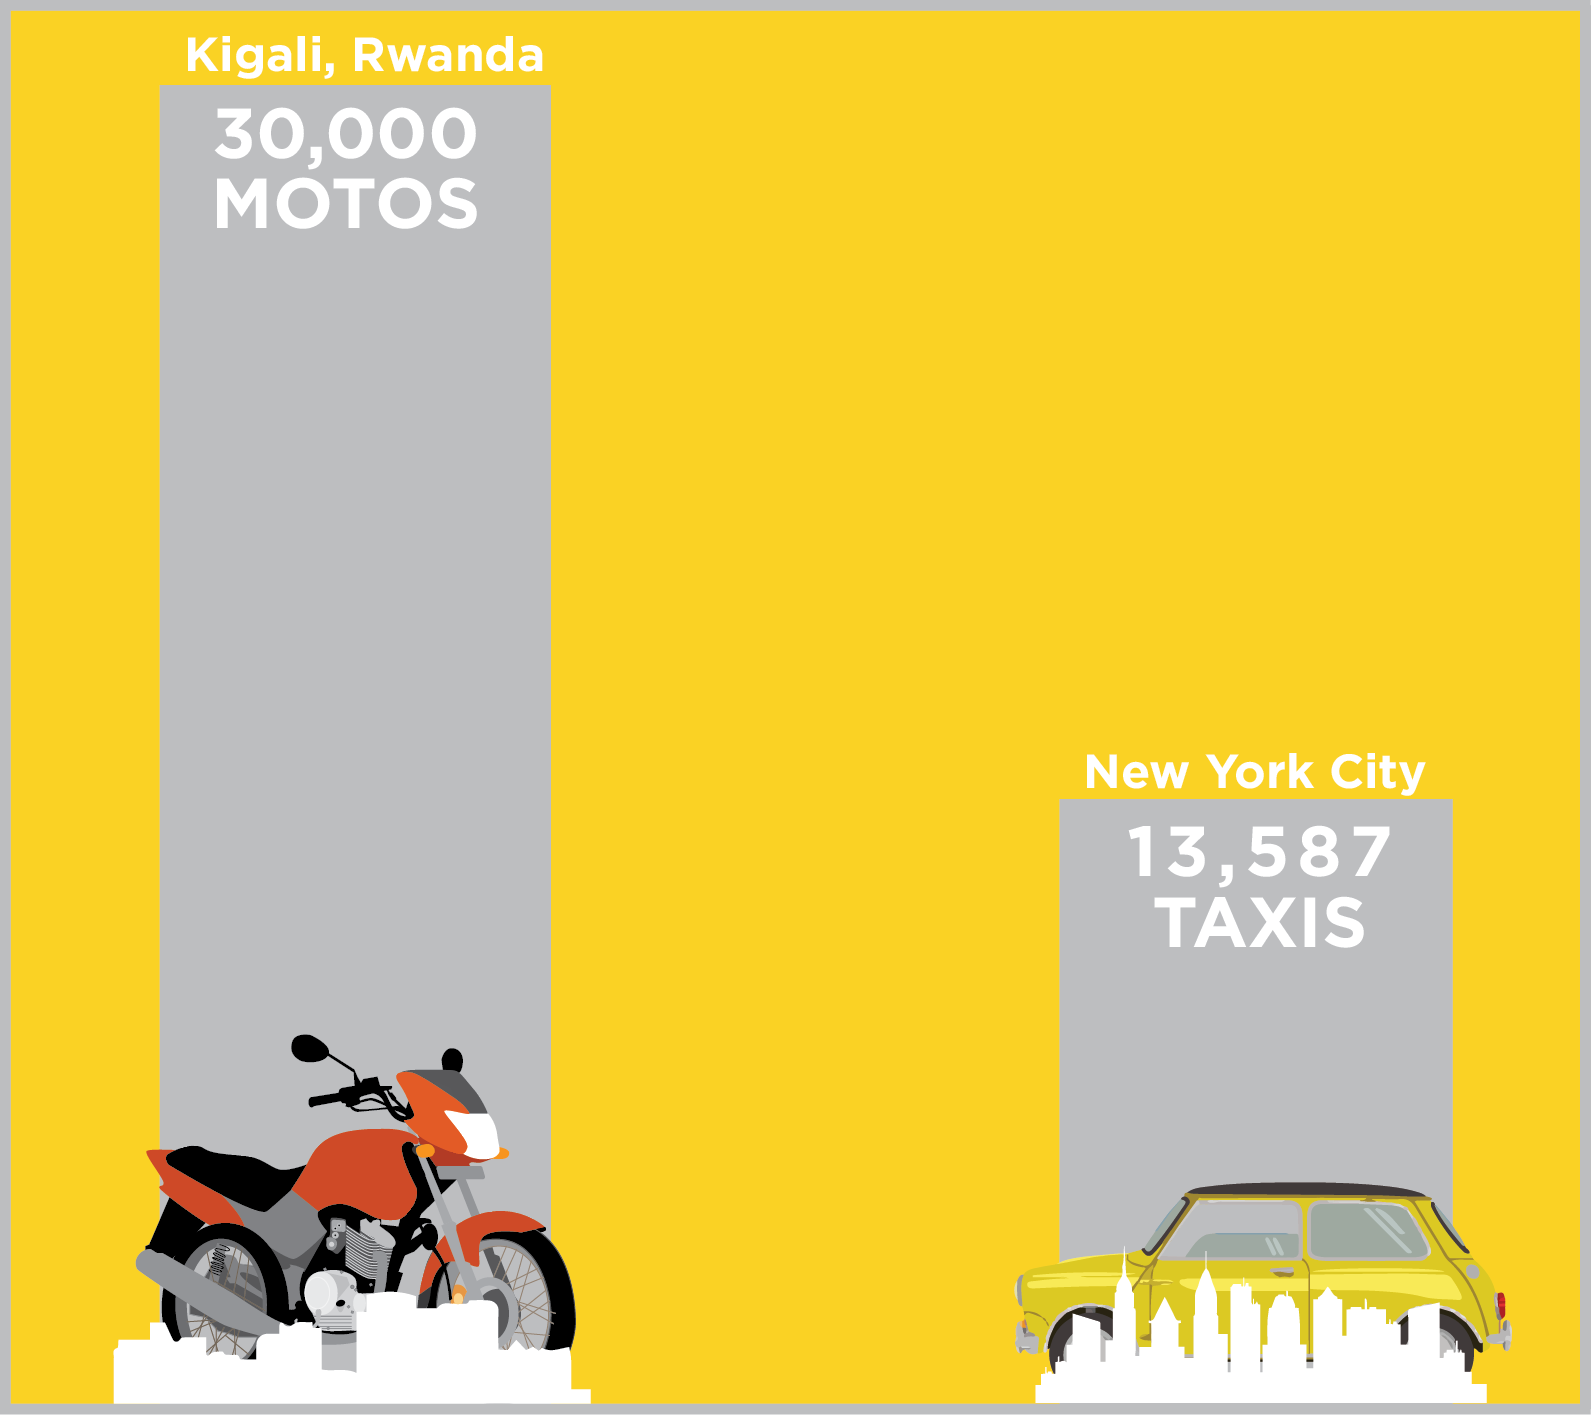 Kigali vs NYC - There are more taxi motorcycles in Kigali than taxi cabs in New York City. Imagine replacing this entire fleet in the heart of Africa with electric vehicles.